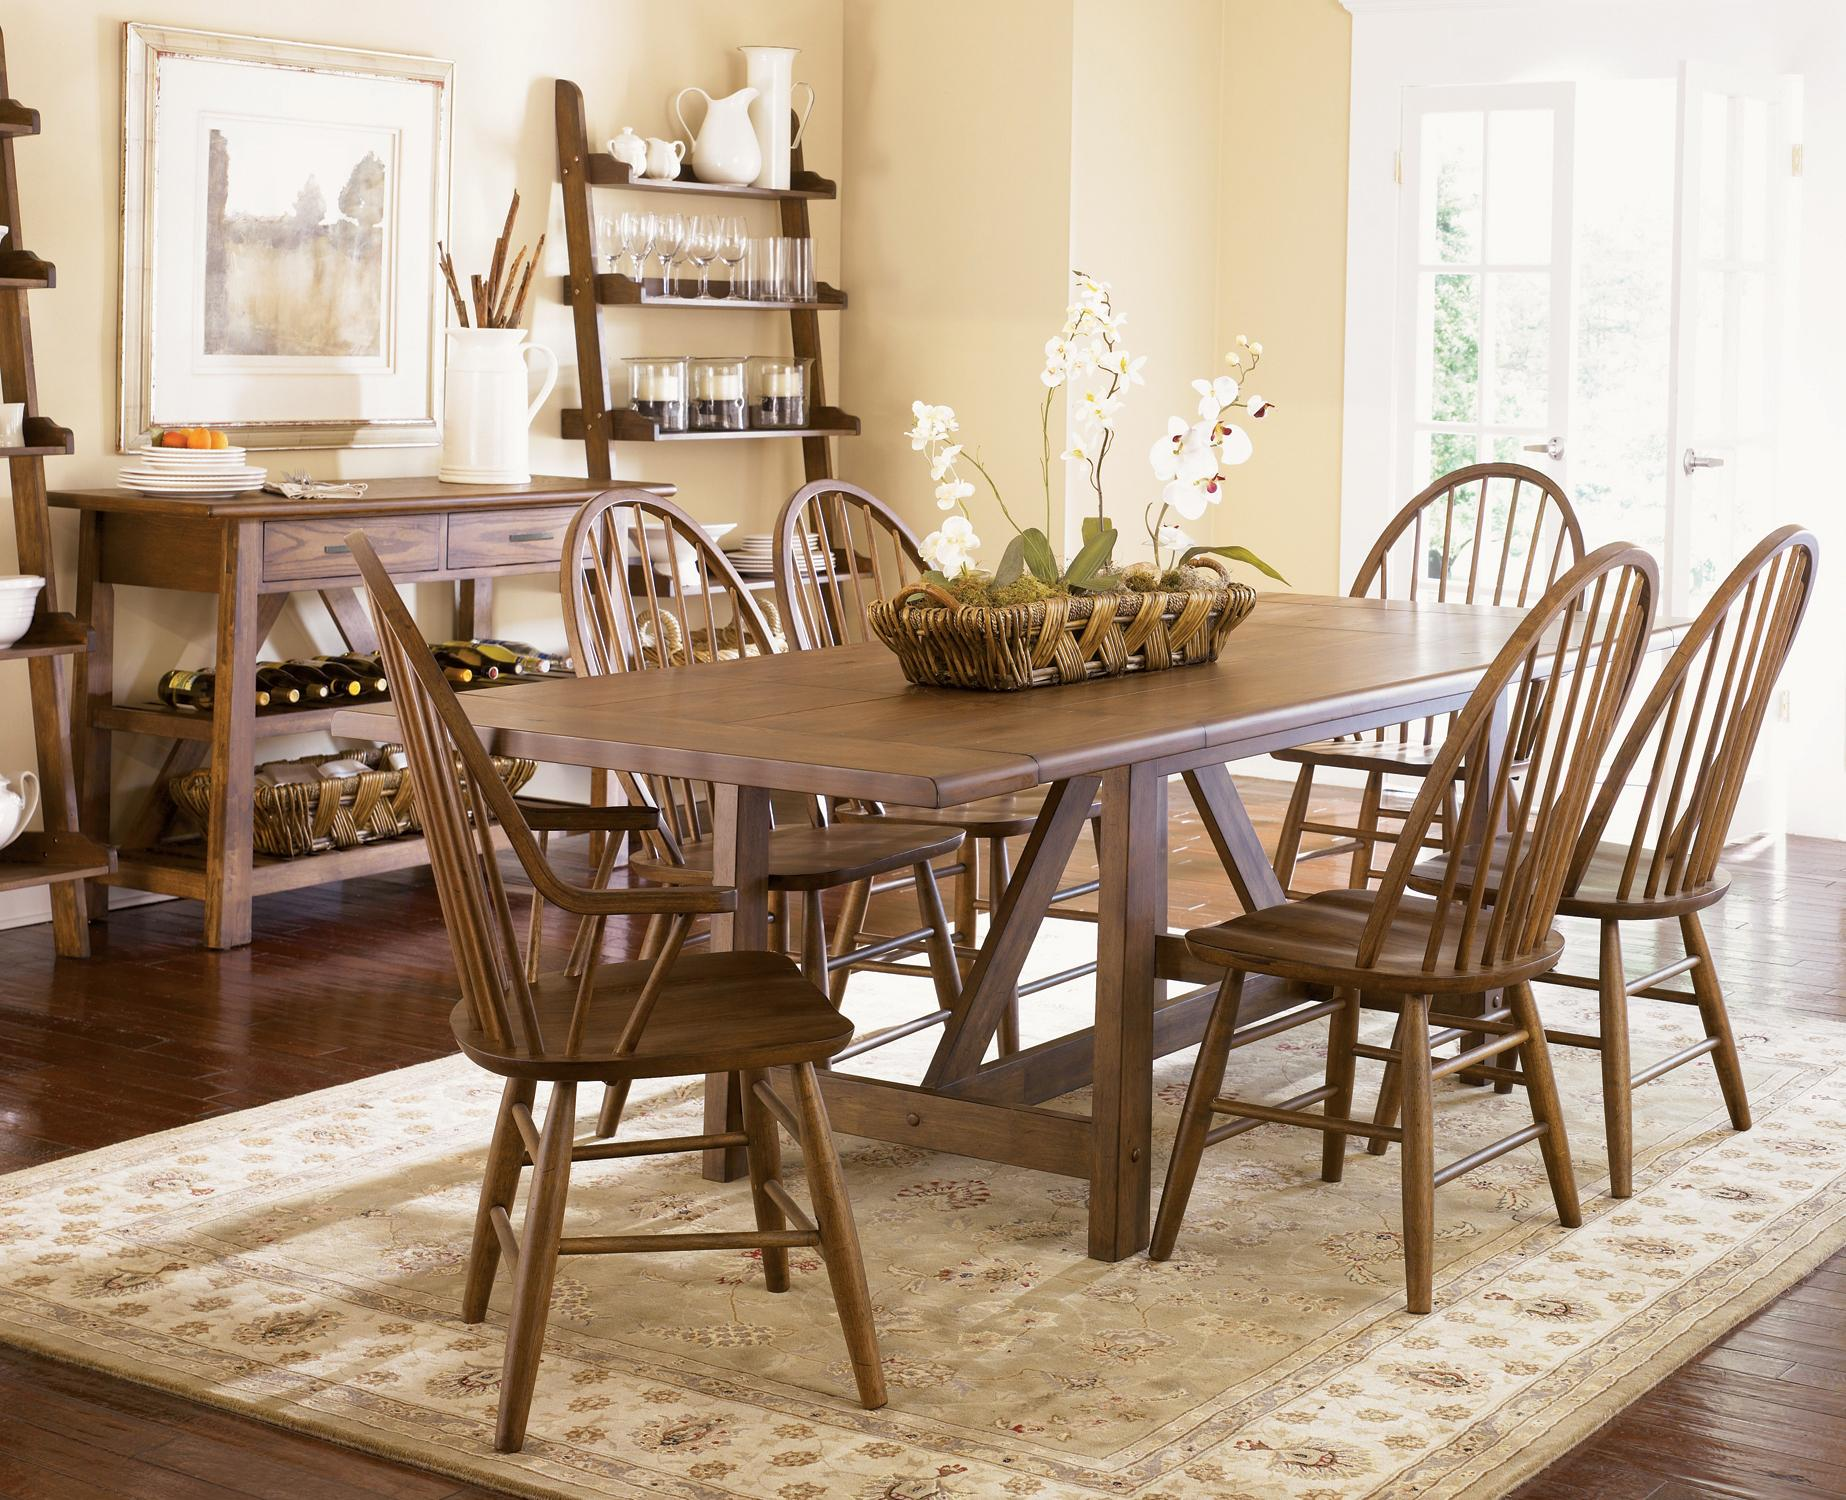 chairs dining room folding spectator most comfortable for your longer